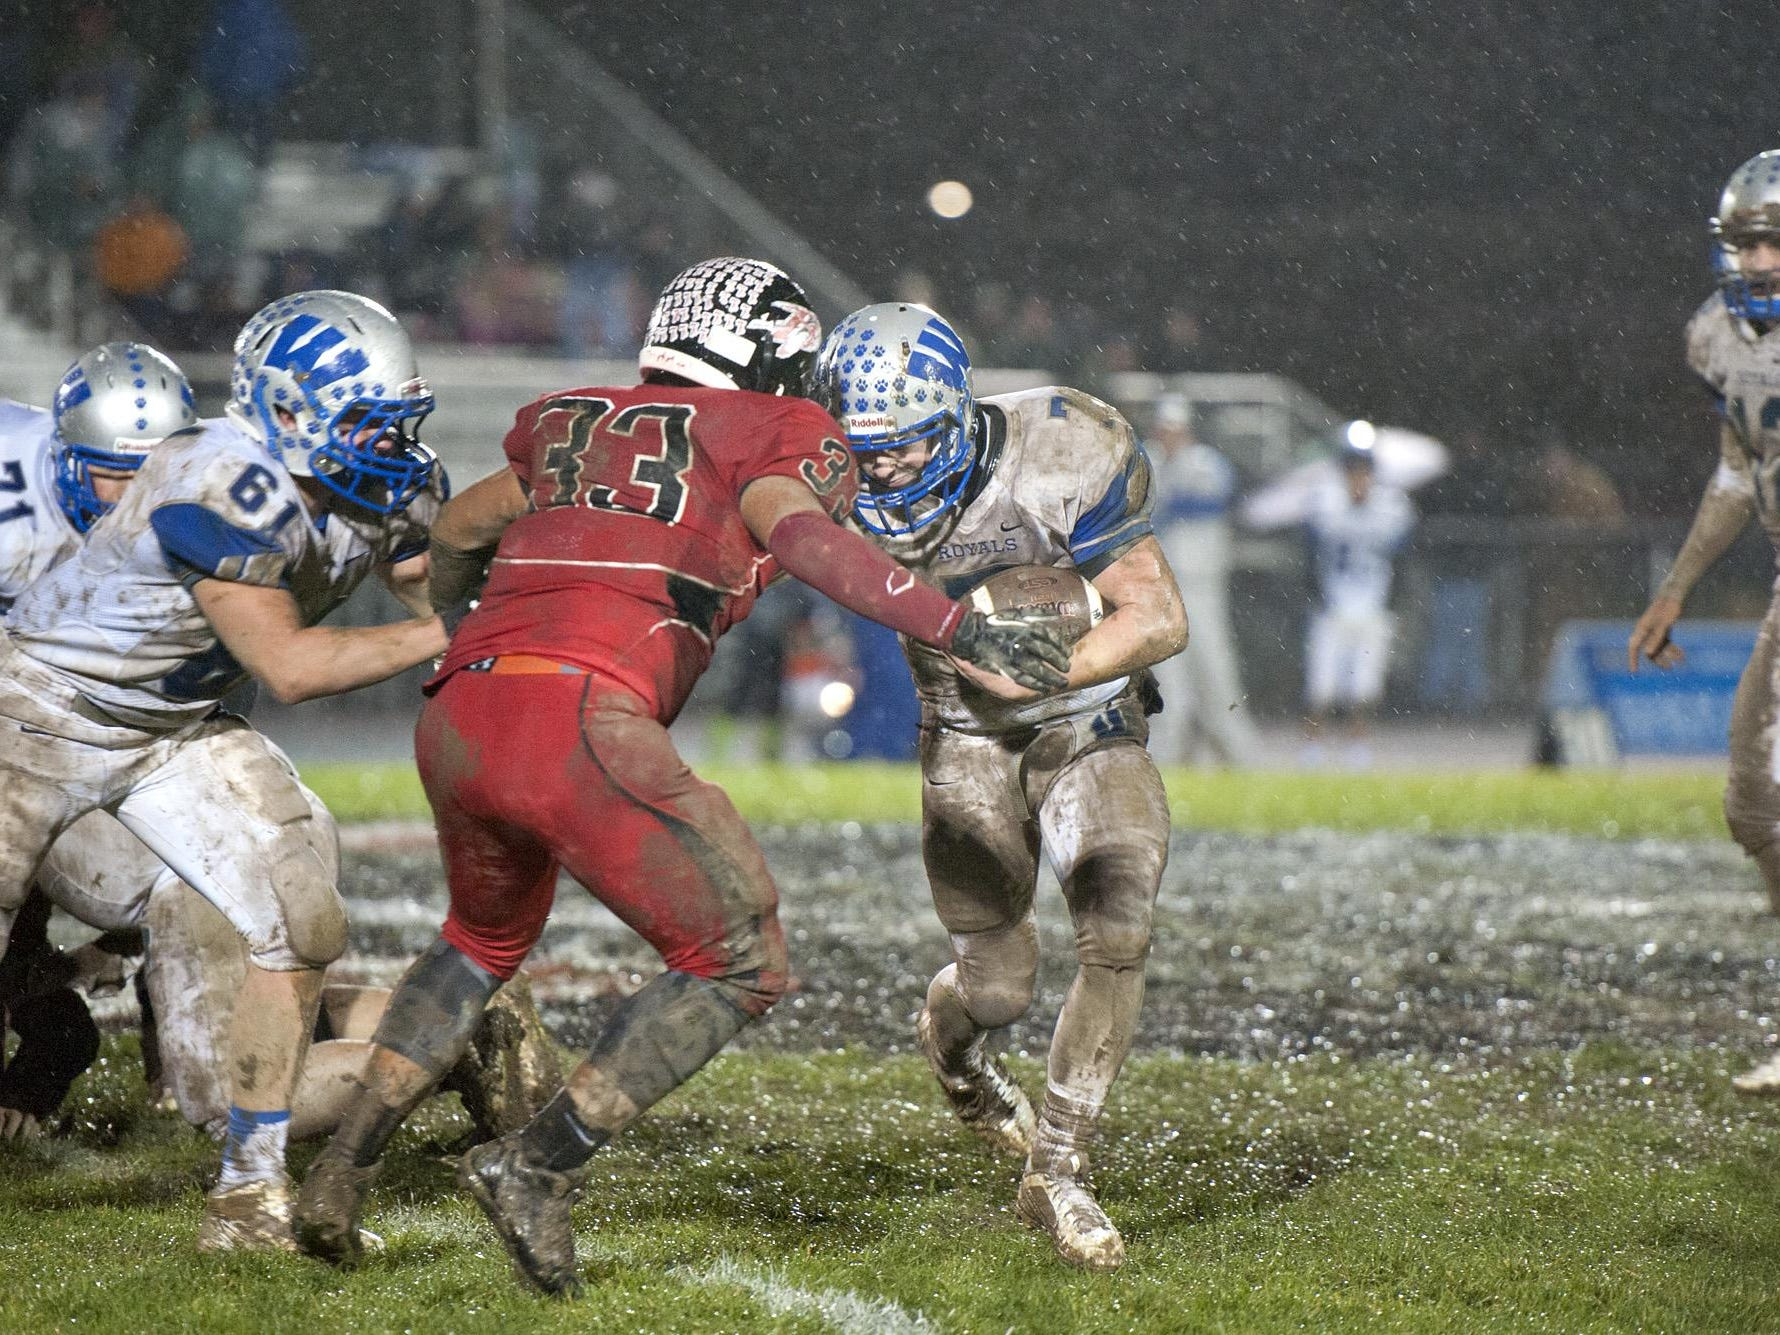 Mike Dornbirer/Gannett OhioWynford's Nick Looker runs the ball against Bucyrus during the annual Copper Kettle game Oct. 31.